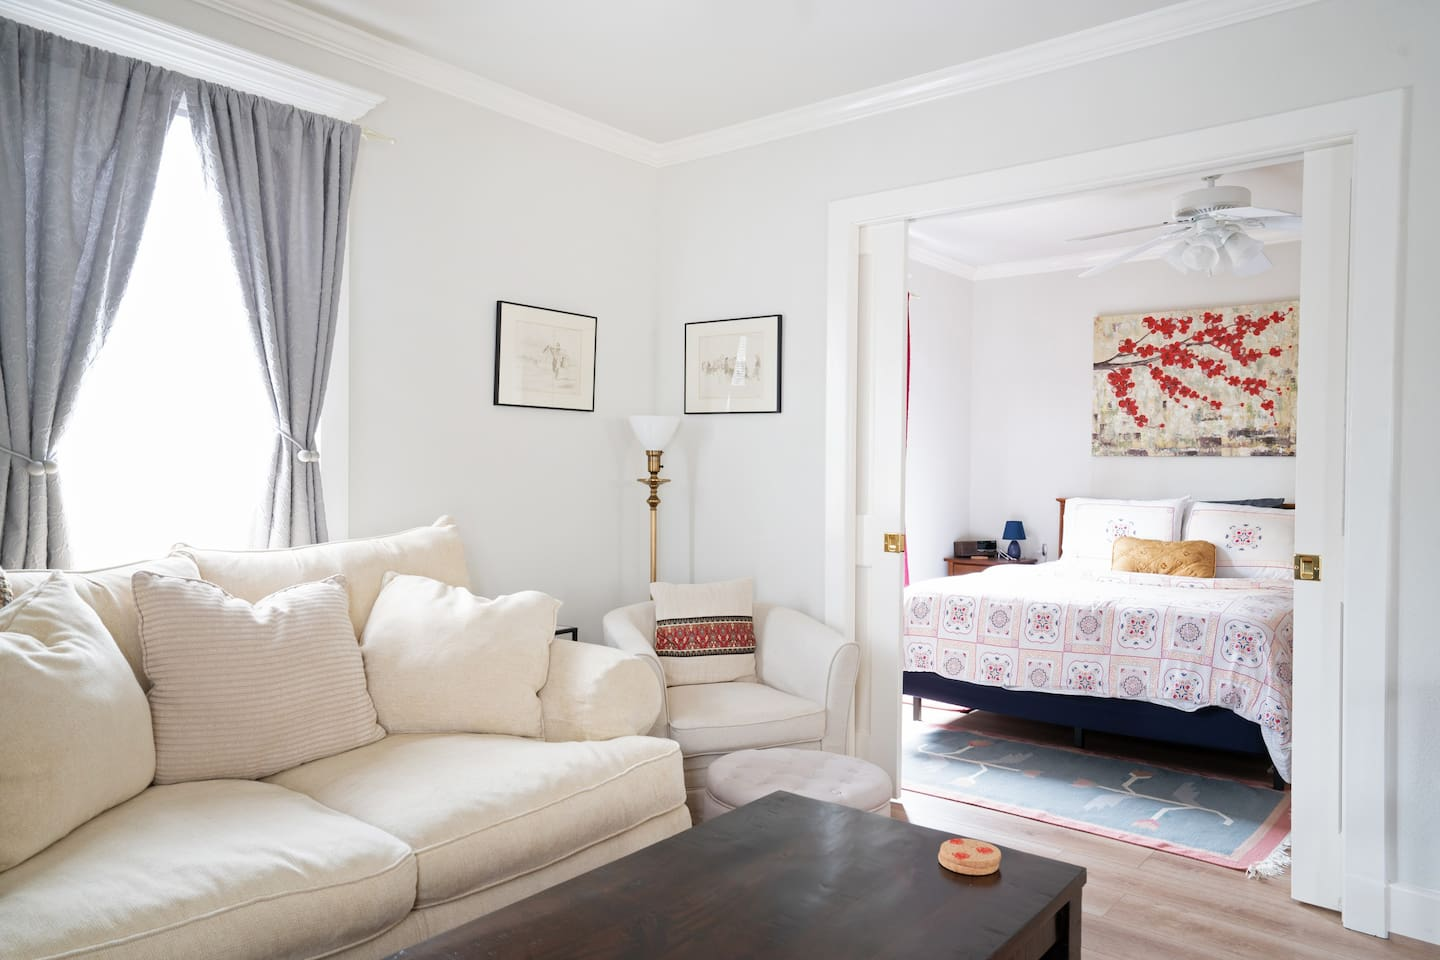 A bright and cozy one bedroom apartment with the kitchen, dining and living areas in a large open concept space.